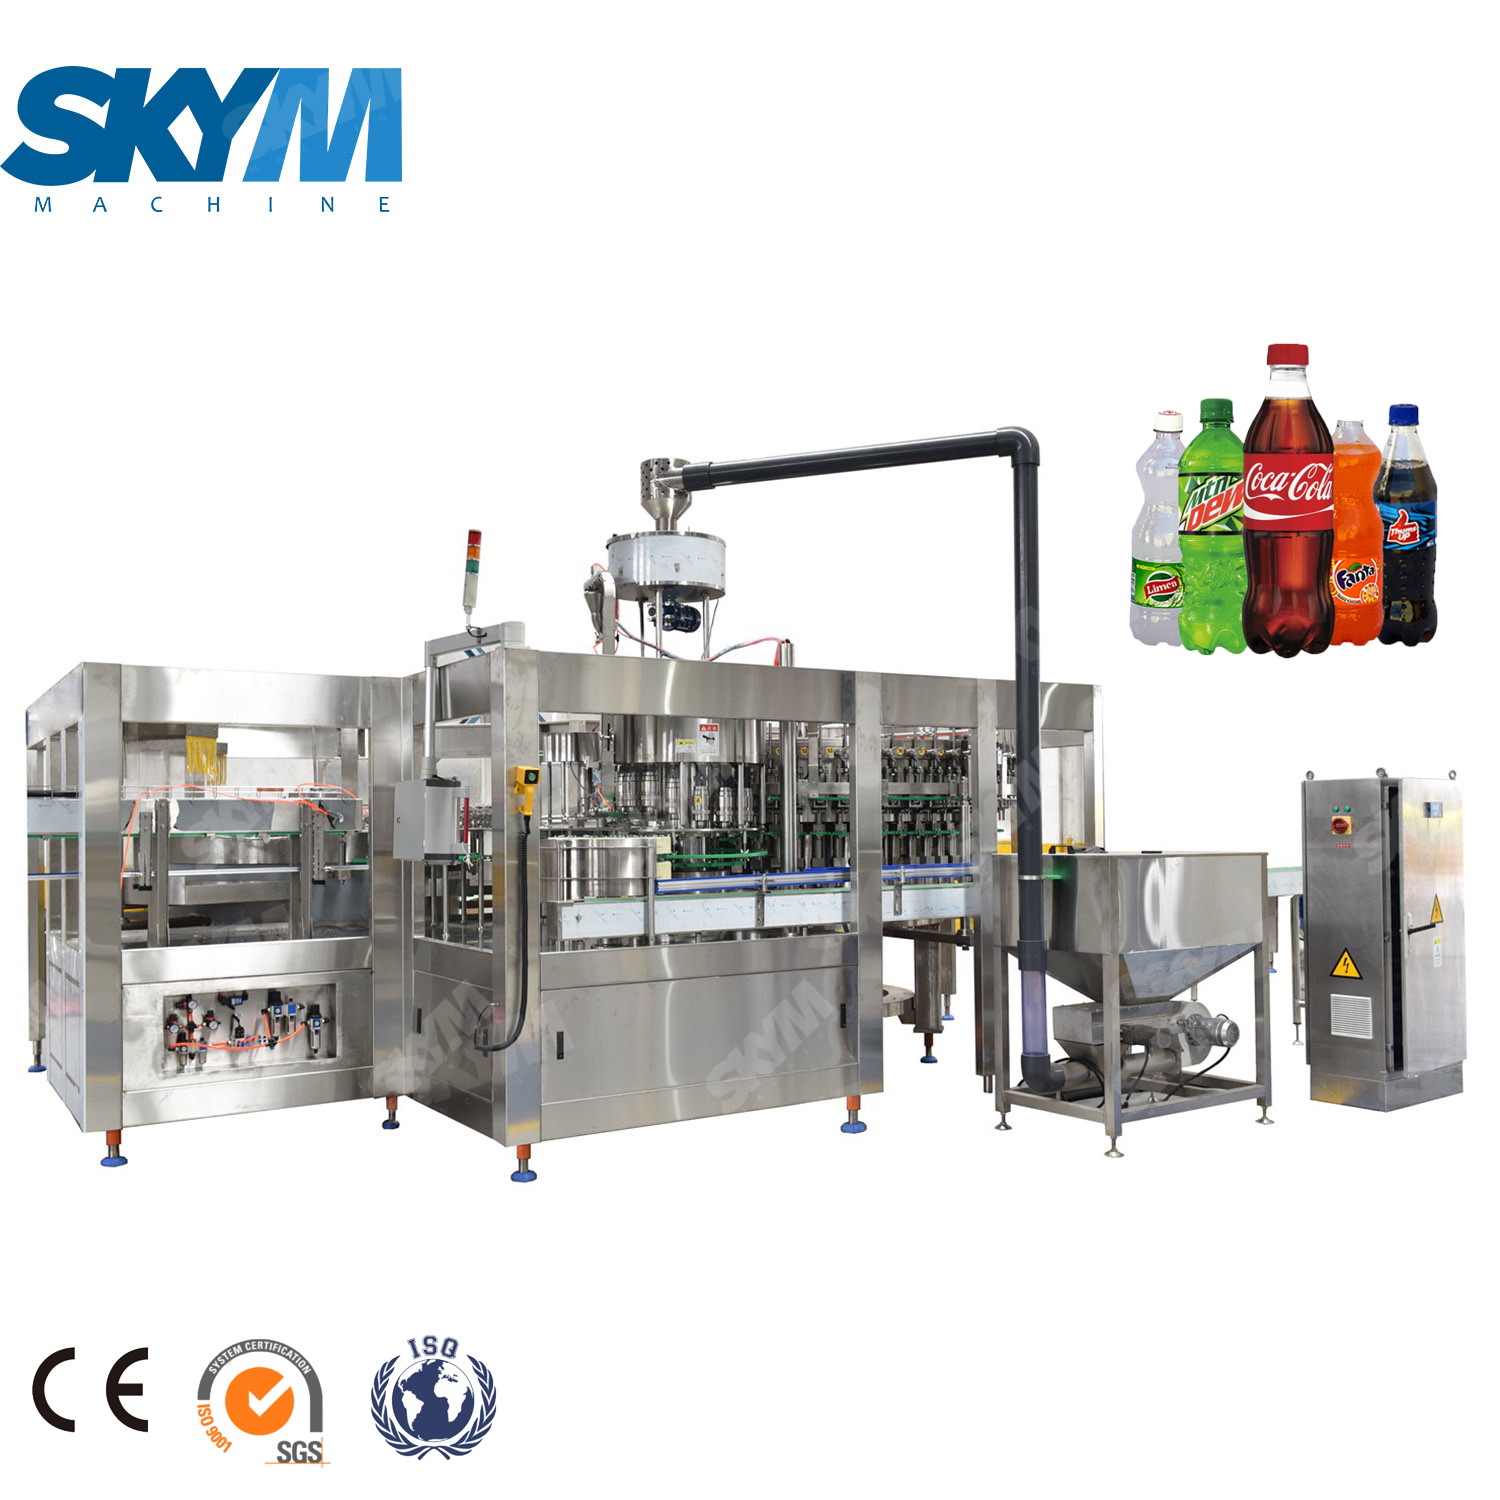 High Capacity 15000BPH Bottle Filling Machine For Soft Drinks